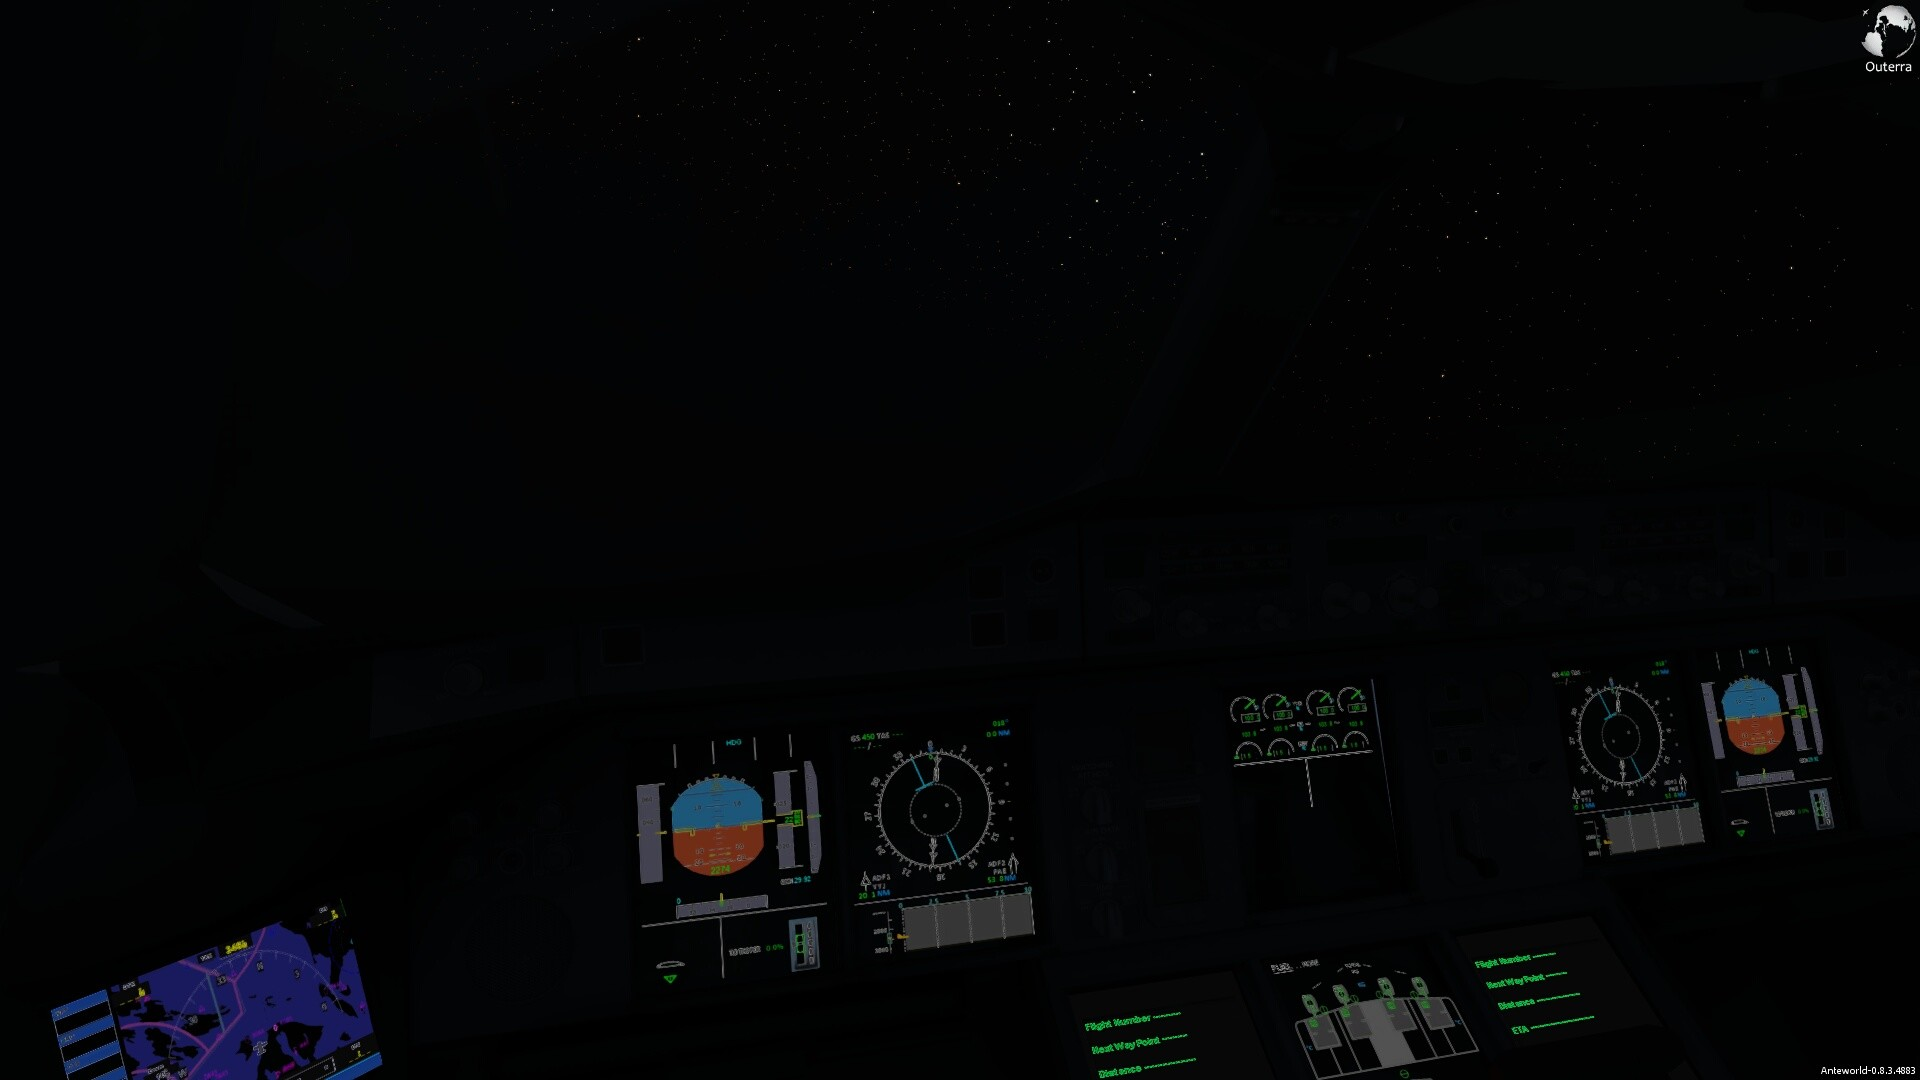 I upgraded the A380 cockpit for night operations.